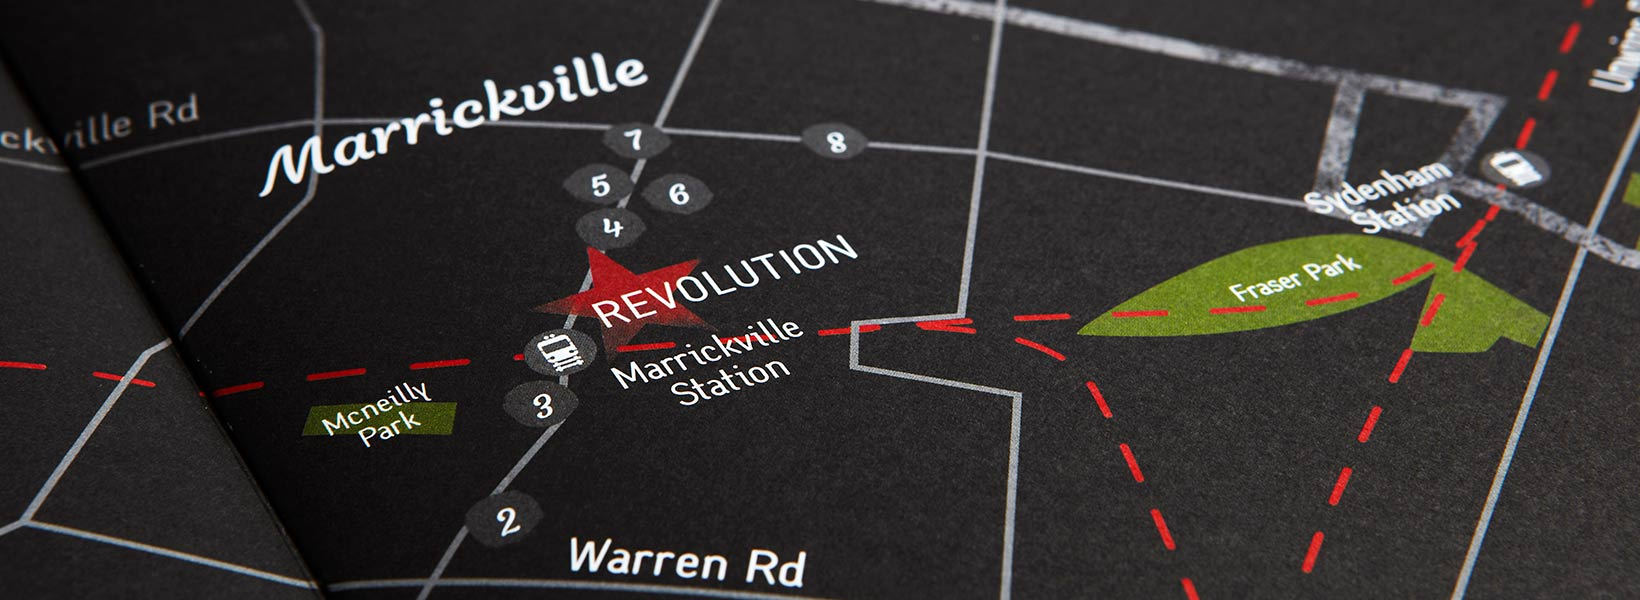 Marrickville Revolution